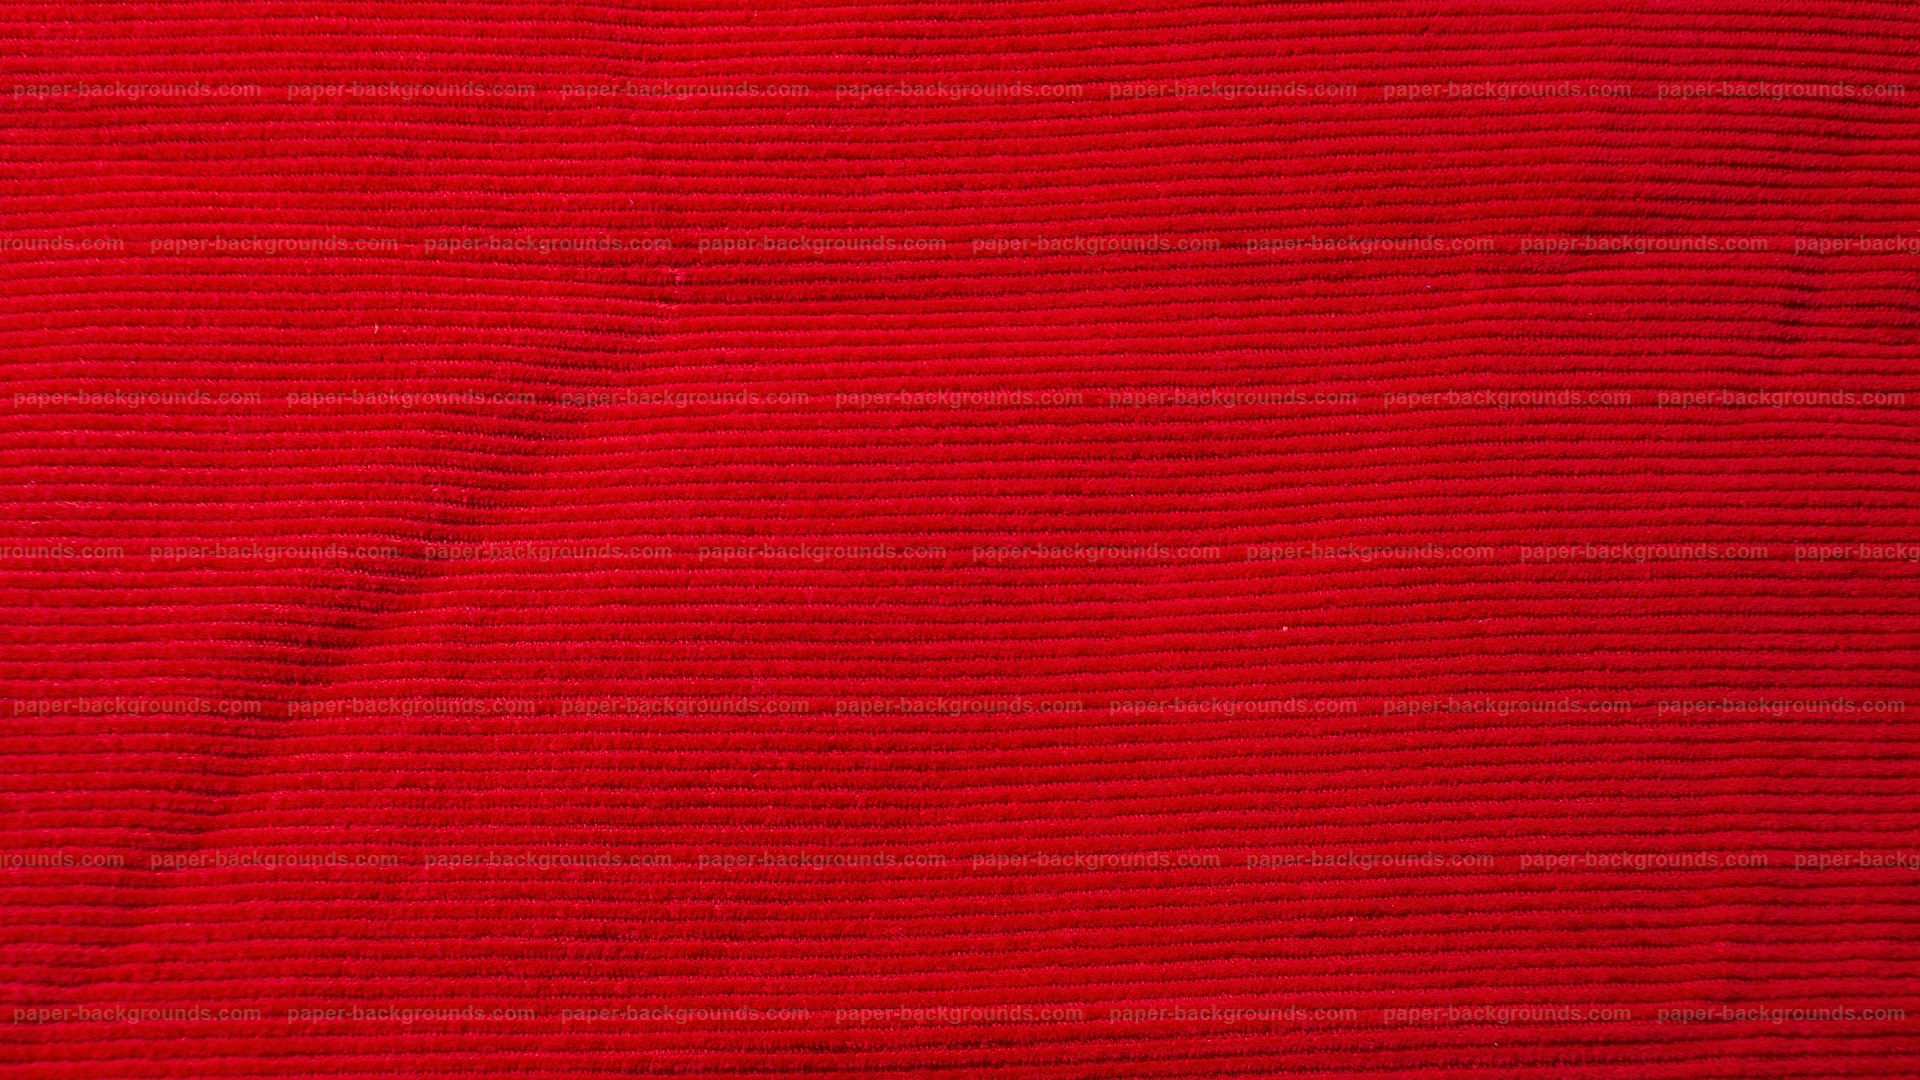 Red Fabric Texture Material HD